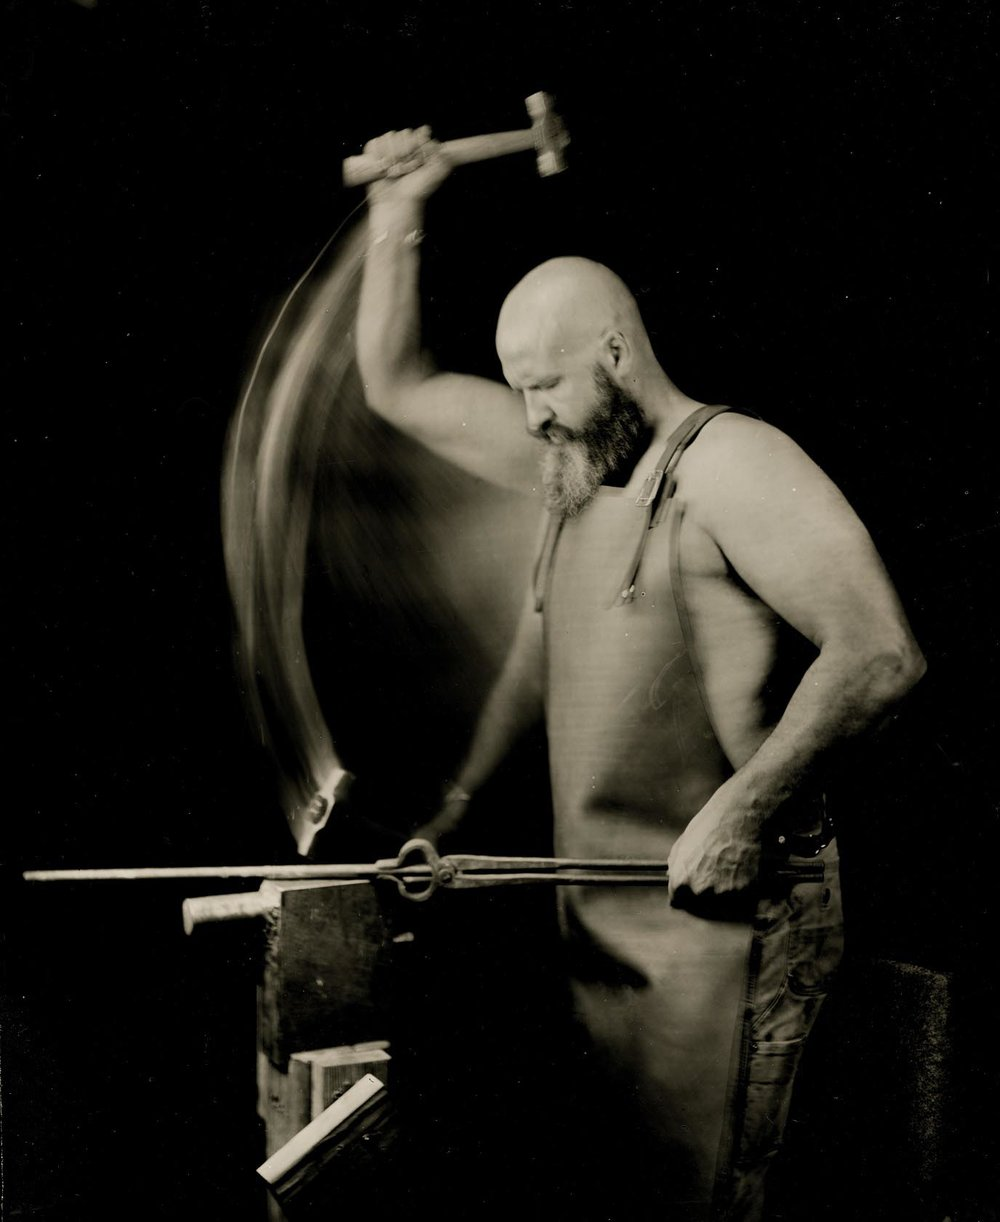 Study of a Blacksmith's Downward Hammer Strike - By: Shane Balkowitsch  http://sharoncol.balkowitsch.com/wetplate.htm